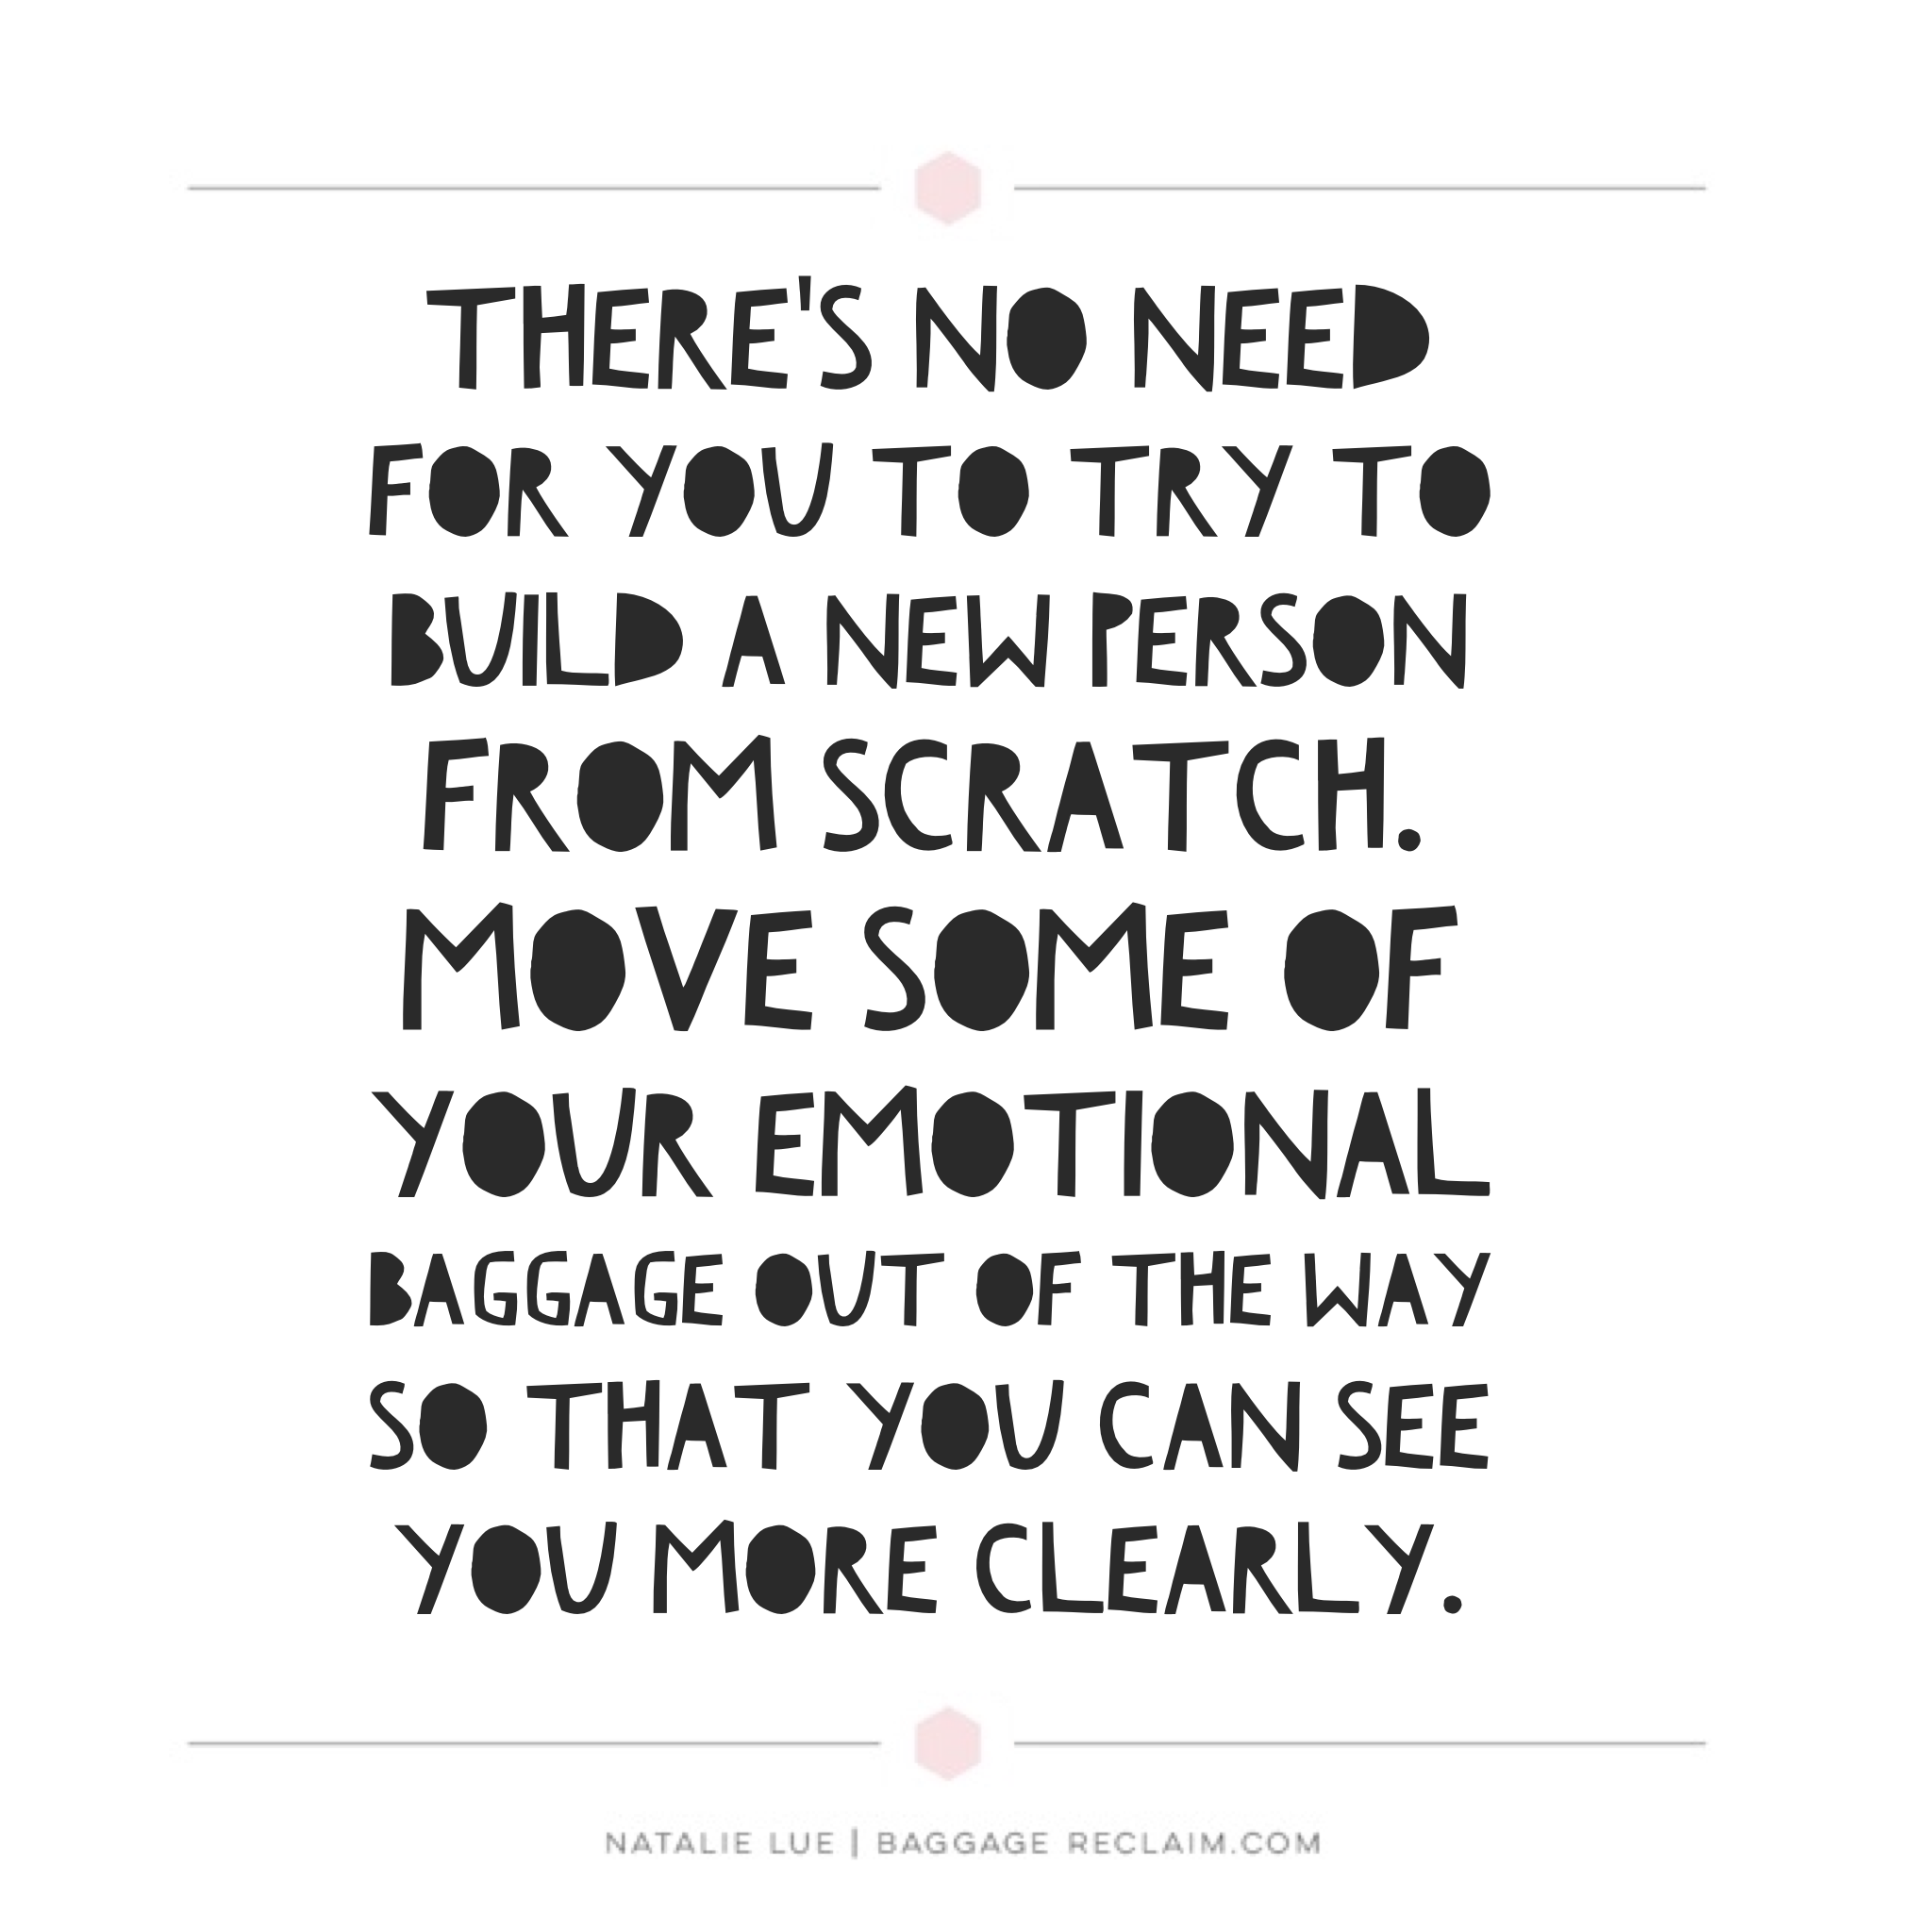 There's no need for you to try to build a new person from scratch. Move some of your emotional baggage out of the way so that you can see you more clearly.